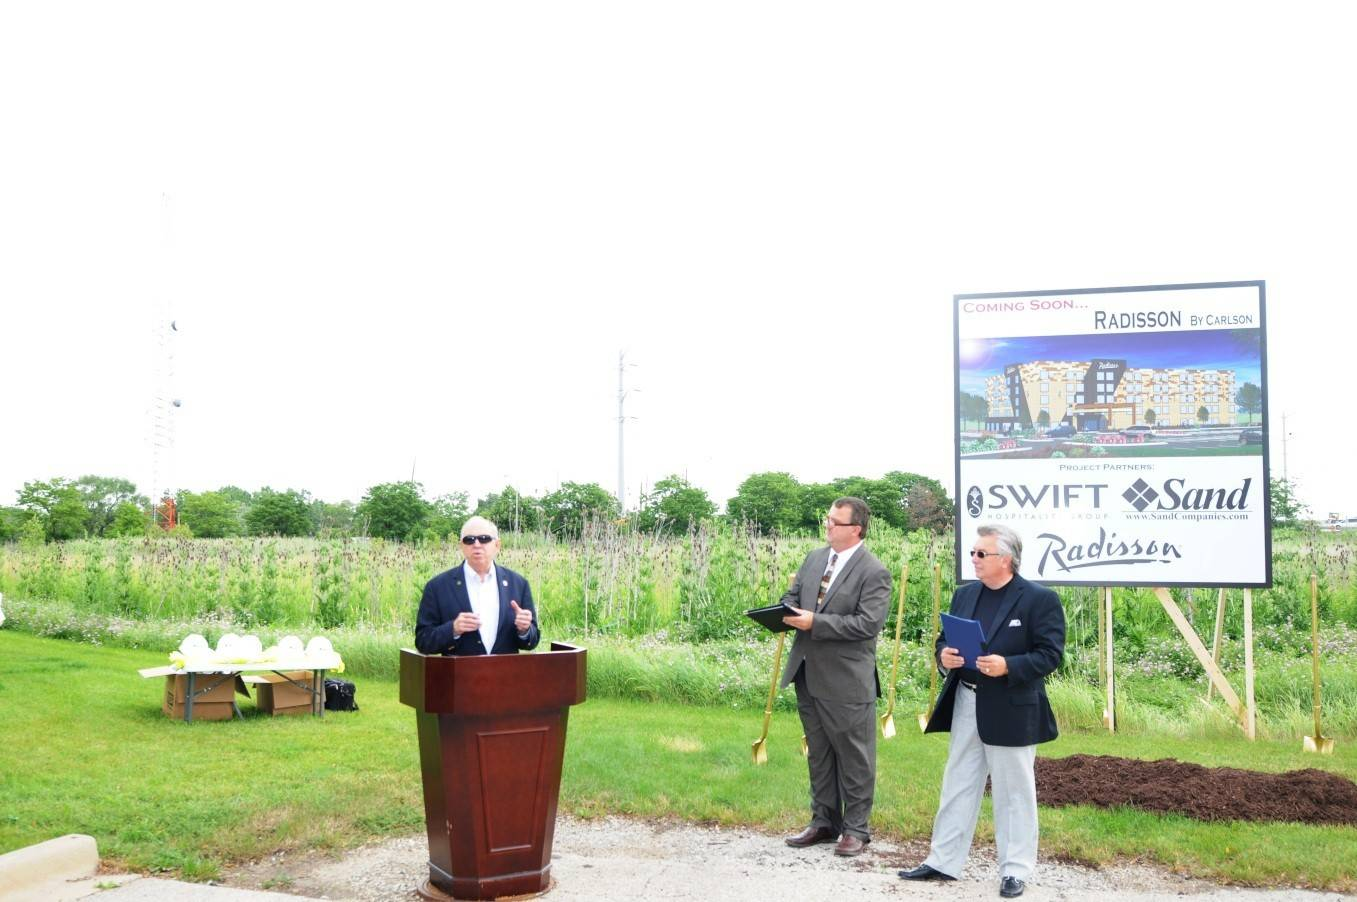 Schaumburg Mayor Al Larson, left, speaks during groundbreaking ceremonies this week for the new five-story, 142-room Radisson Hotel at the southwest corner of Roselle Road and the Jane Addams Memorial Tollway. With Larson are representatives of developers Swift Hospitality and Sand Companies.